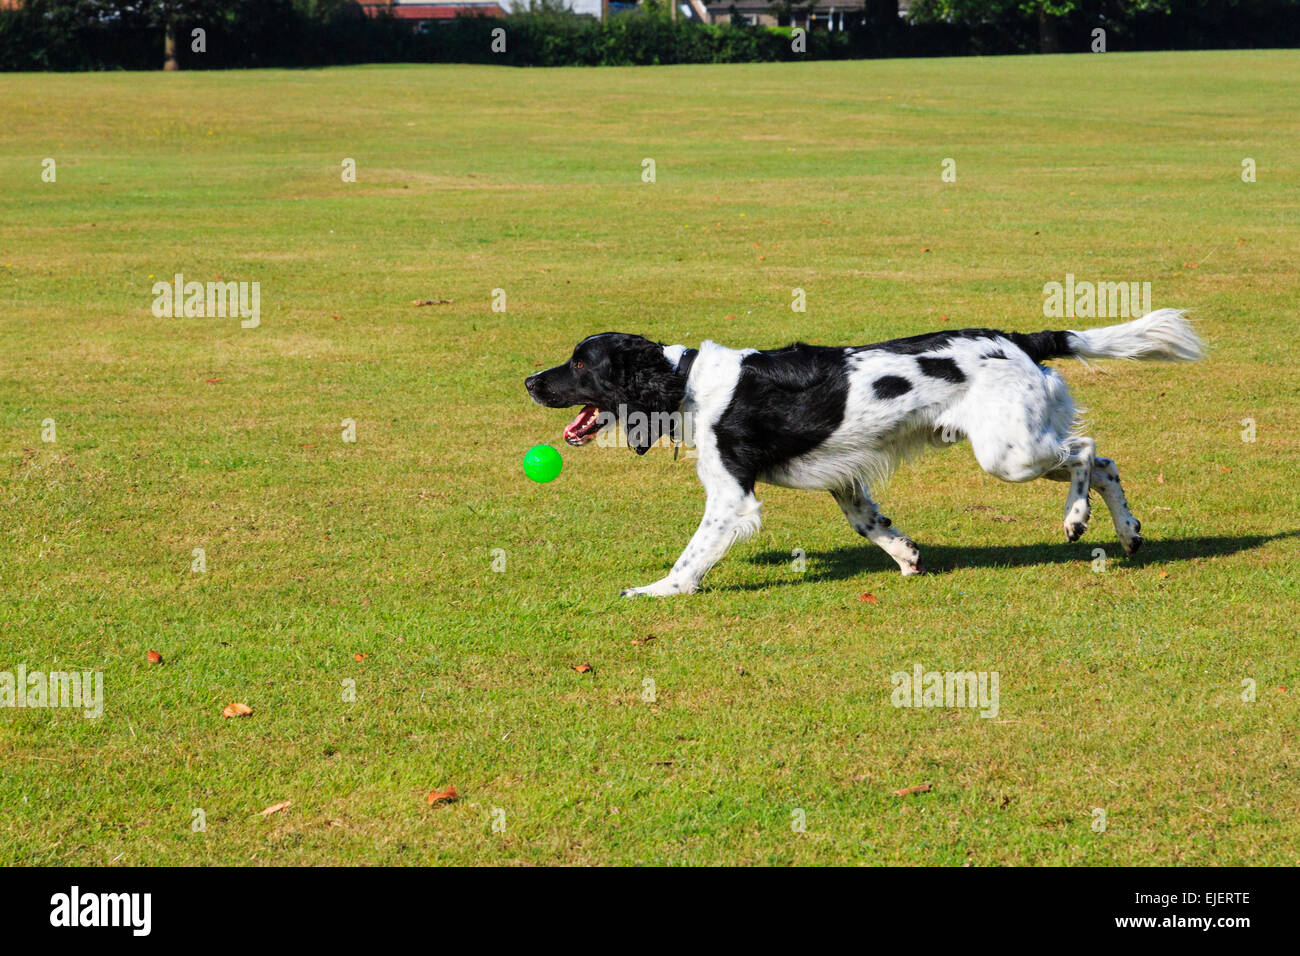 An adult Black and White English Springer Spaniel pet dog playing with a ball dropping from its mouth in a park. Stock Photo